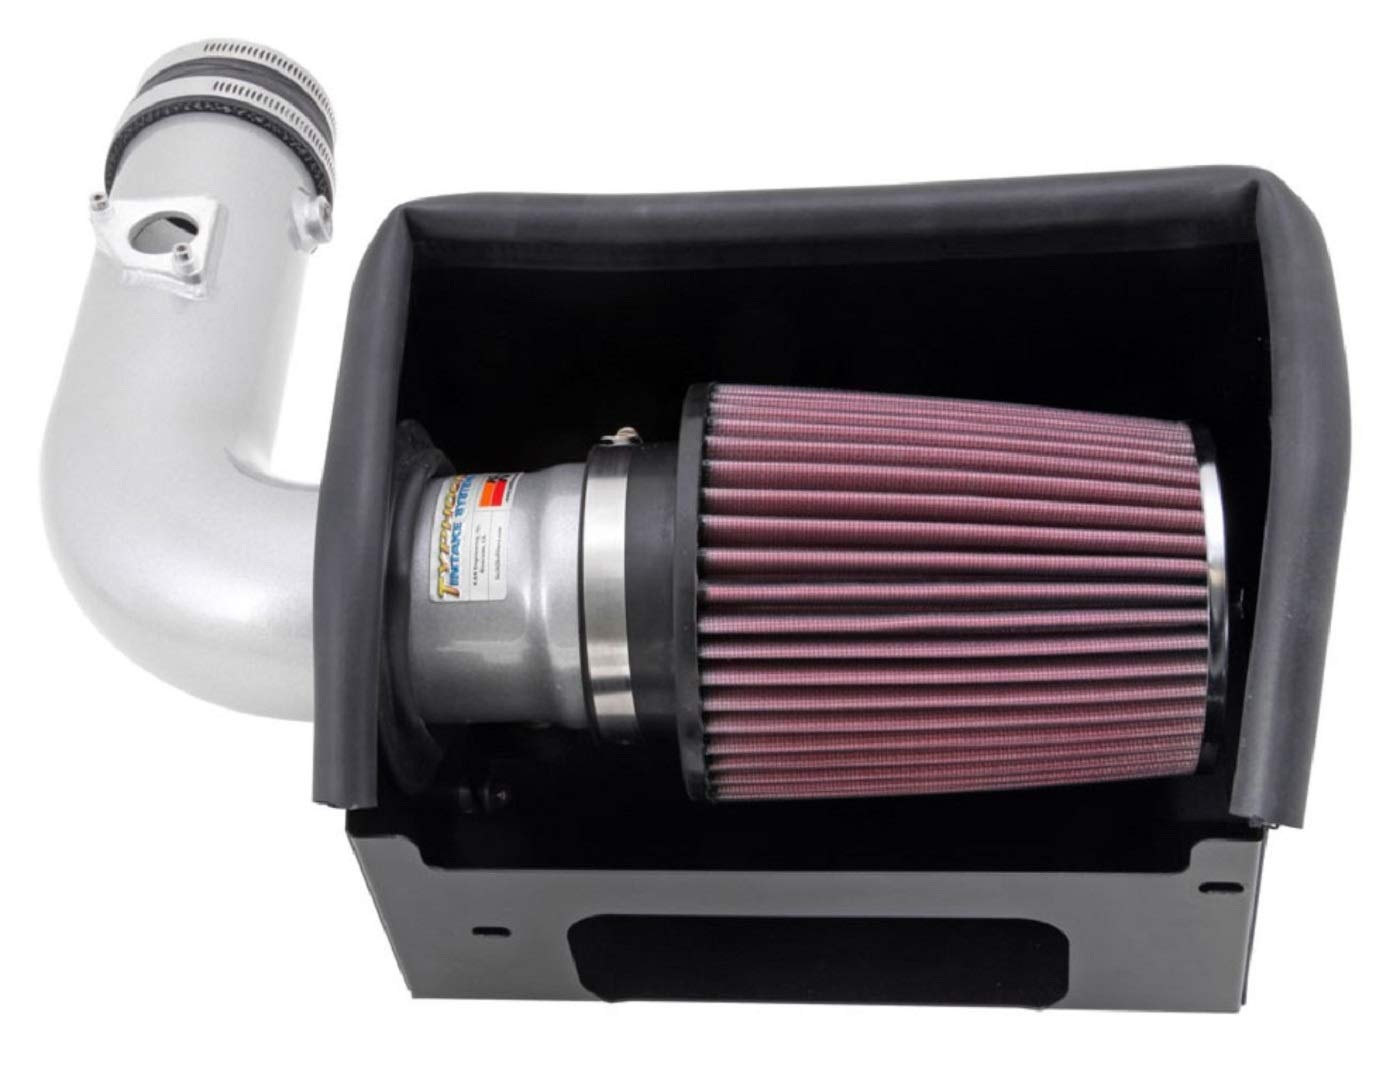 K&N Cold Air Intake Kit: High Performance, Guaranteed to Increase Horsepower: Fits 2012-2019 Toyota/Subaru/Scion (86, GT 86, BRZ, FR-S) 2.0L H4, 69-8619TS